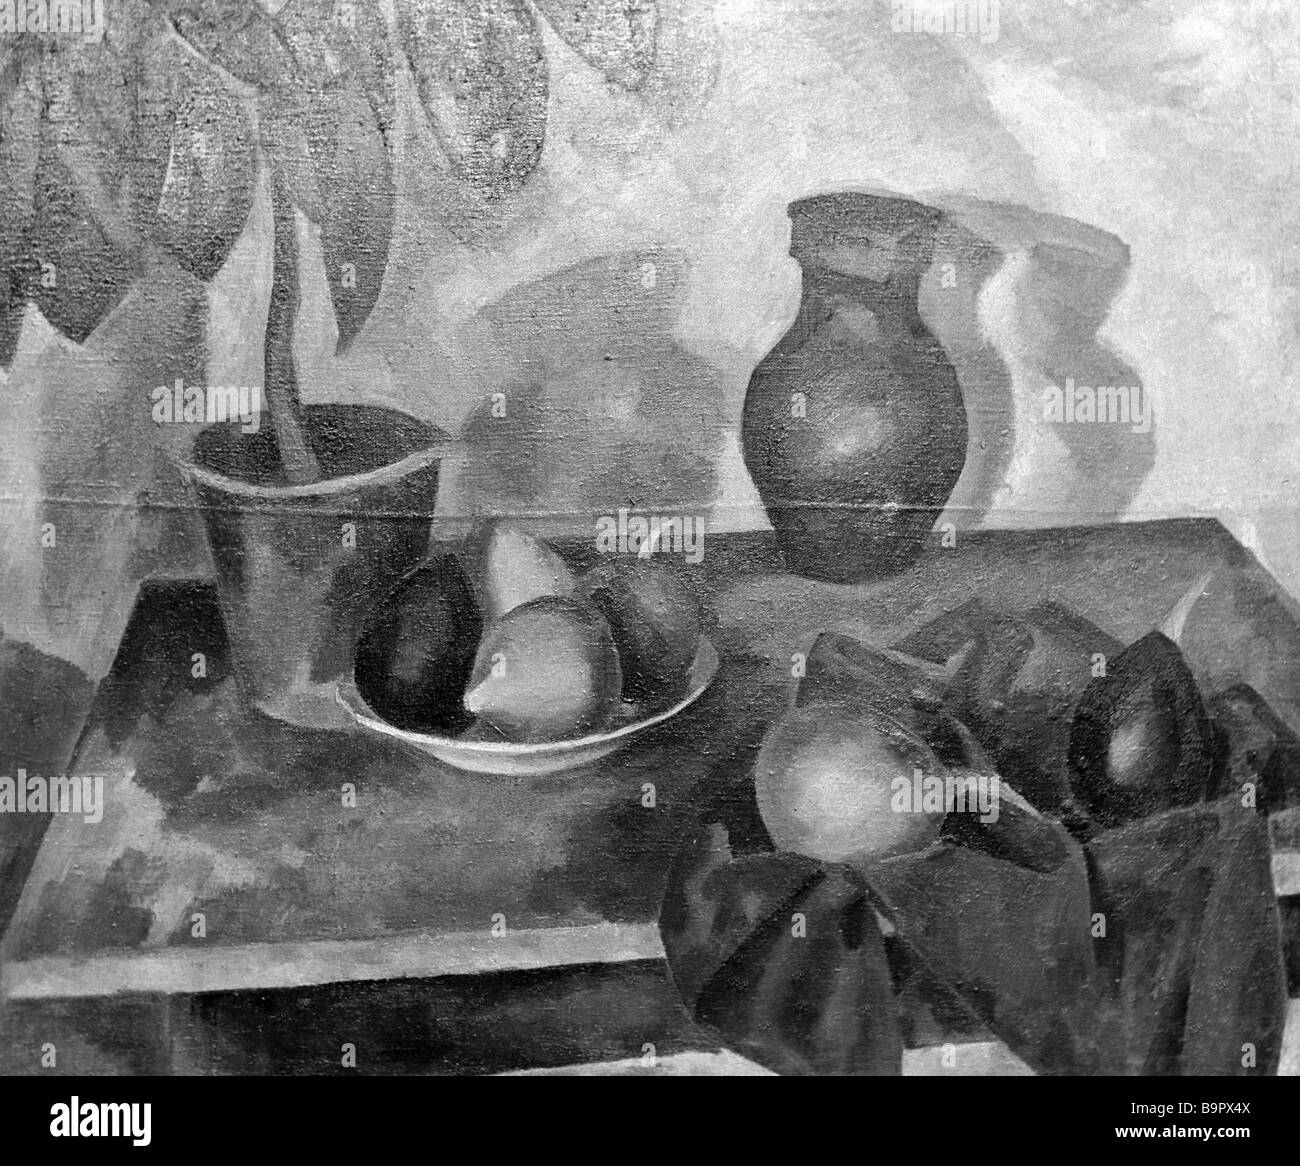 Robert Falk s reproduced Still life with the rubber plant - Stock Image